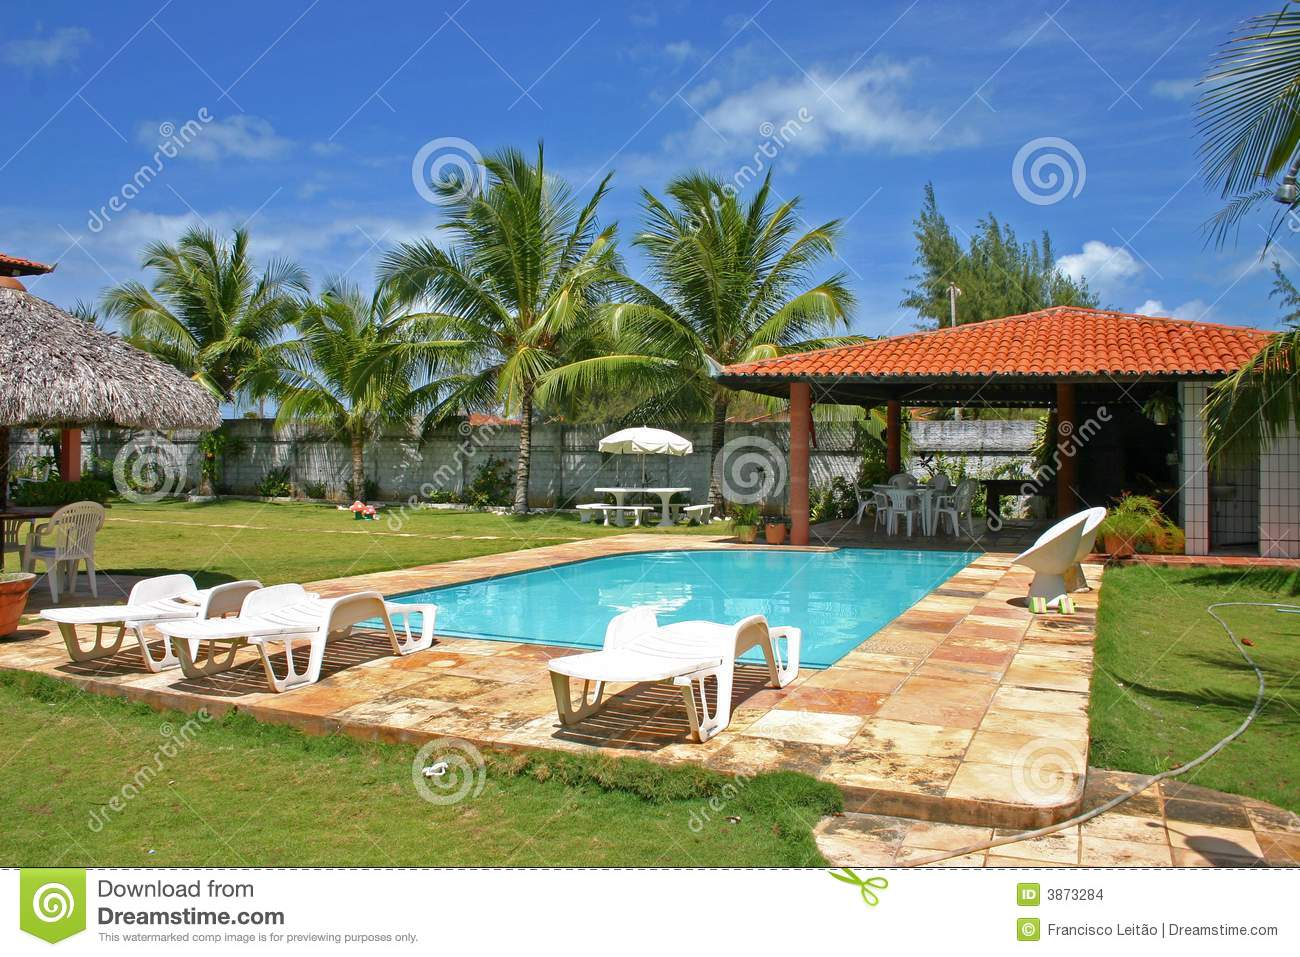 House pool with palmtrees and grass